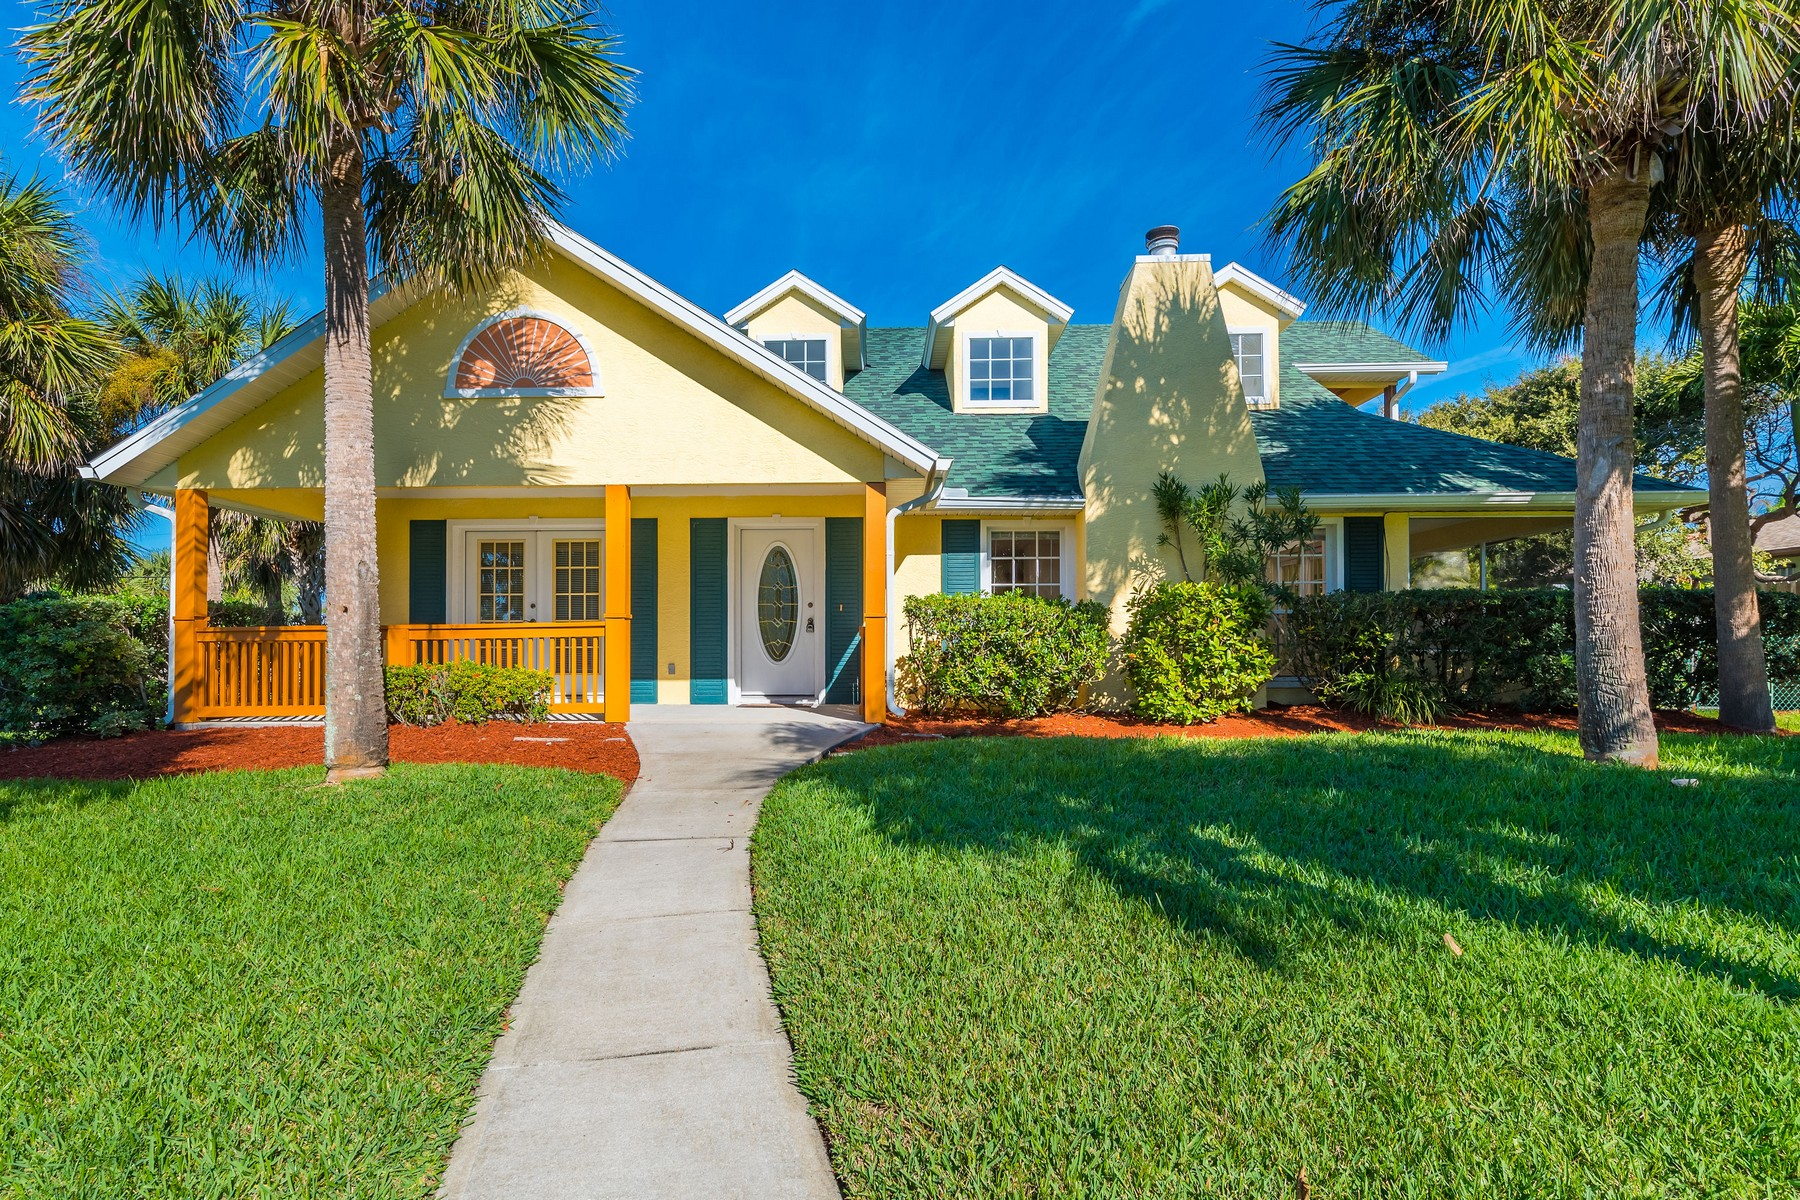 Property for Sale at Charming Beach Side American Colonial 222 Third Avenue Melbourne Beach, Florida 32951 United States